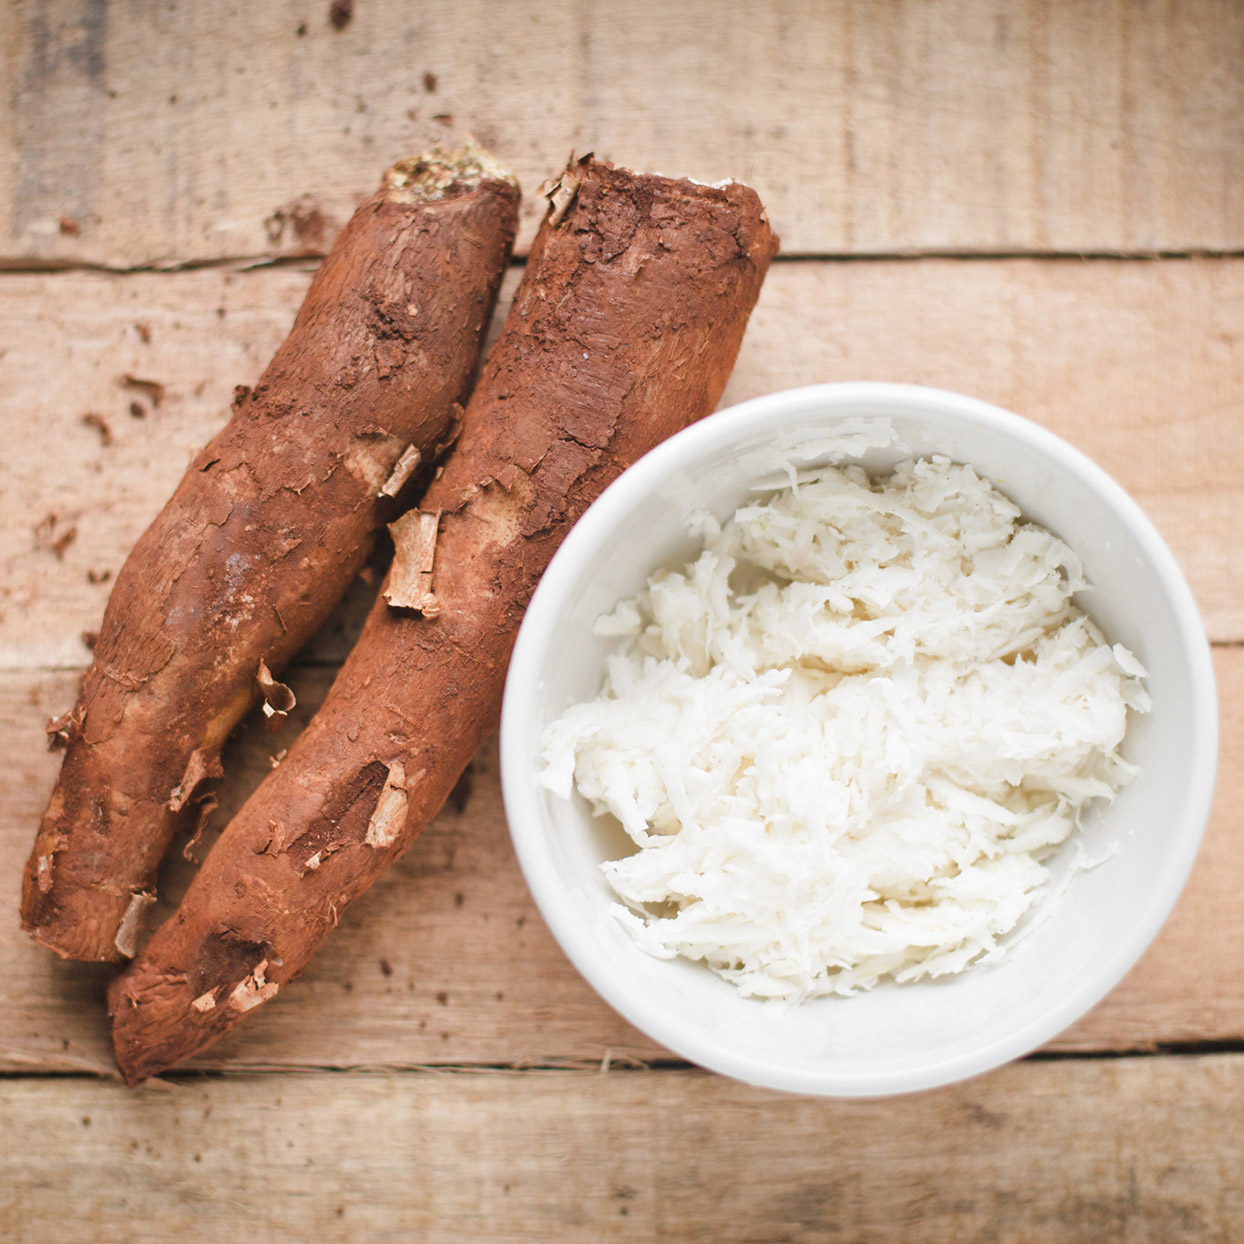 What Is Cassava, and How Do You Use It?